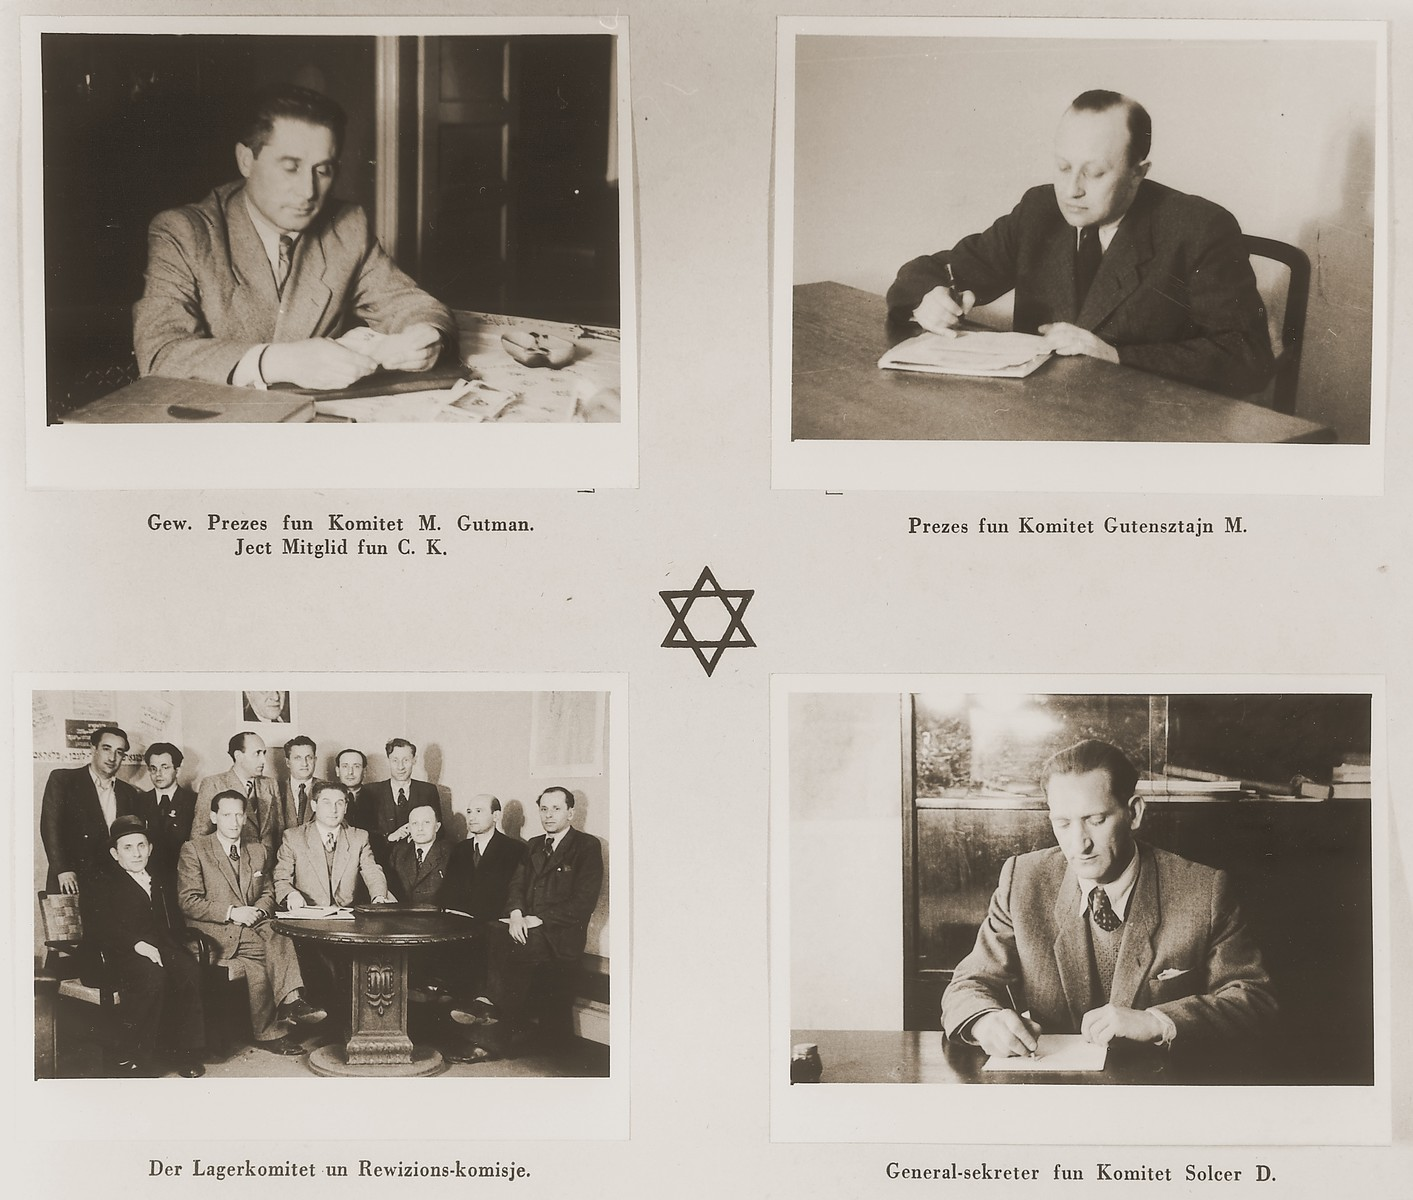 """Four images of members of the Stuttgart DP camp committee in their offices.  Among those pictured are M. Gutman, M. Gutensztajn, and D. Solcer.  One page from the Stuttgart Jewish DP camp album entitled, """"Jidiszer D.P. Center UNRRA--P.C.IRO in Stuttgart,"""" compiled and photographed by Alexander Fiedel and dedicated to Moses Kornberg, head of the commissary."""